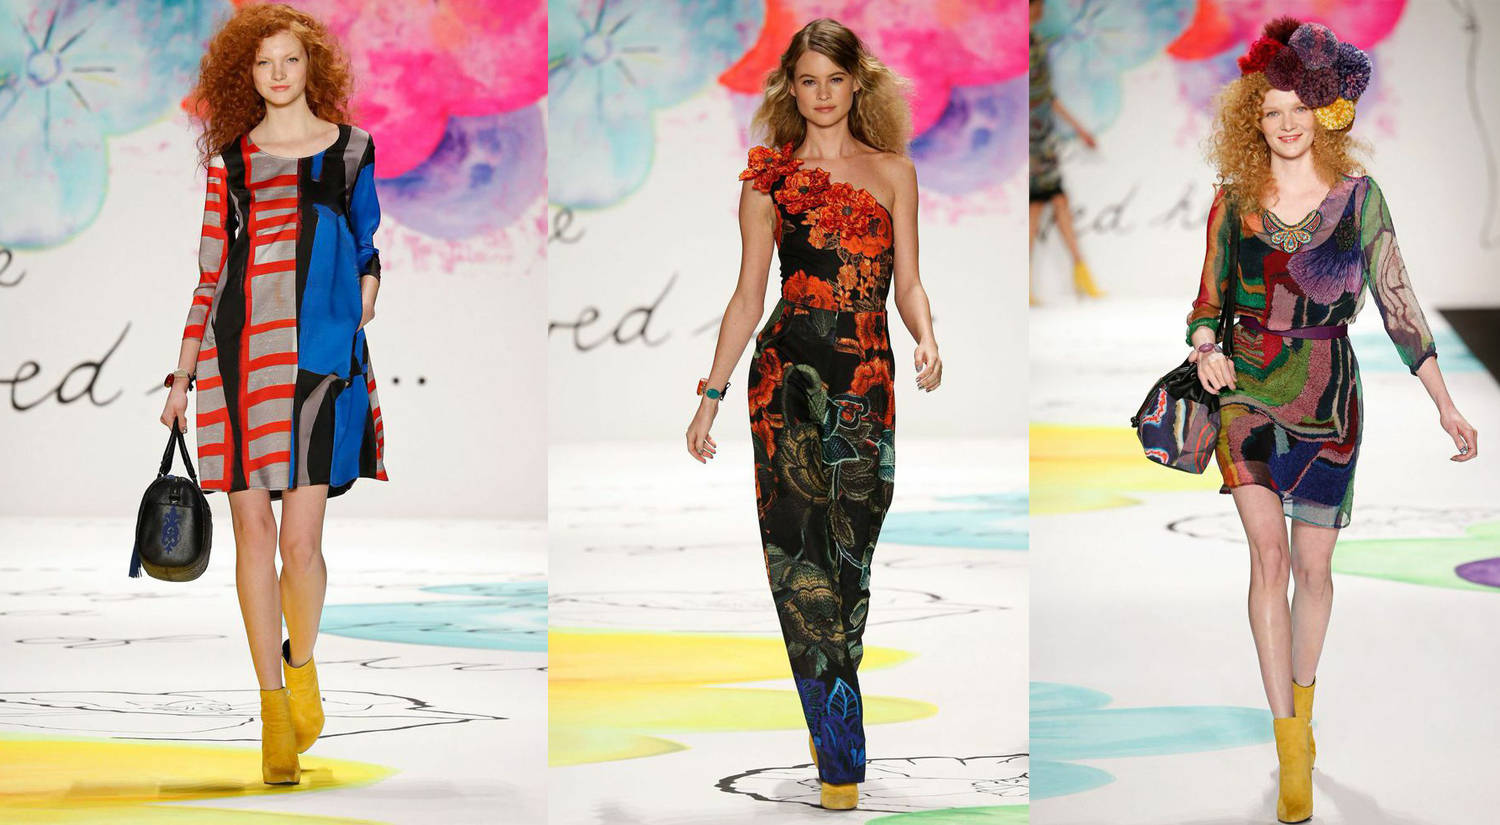 Images above: Images by the courtesy of Desigual